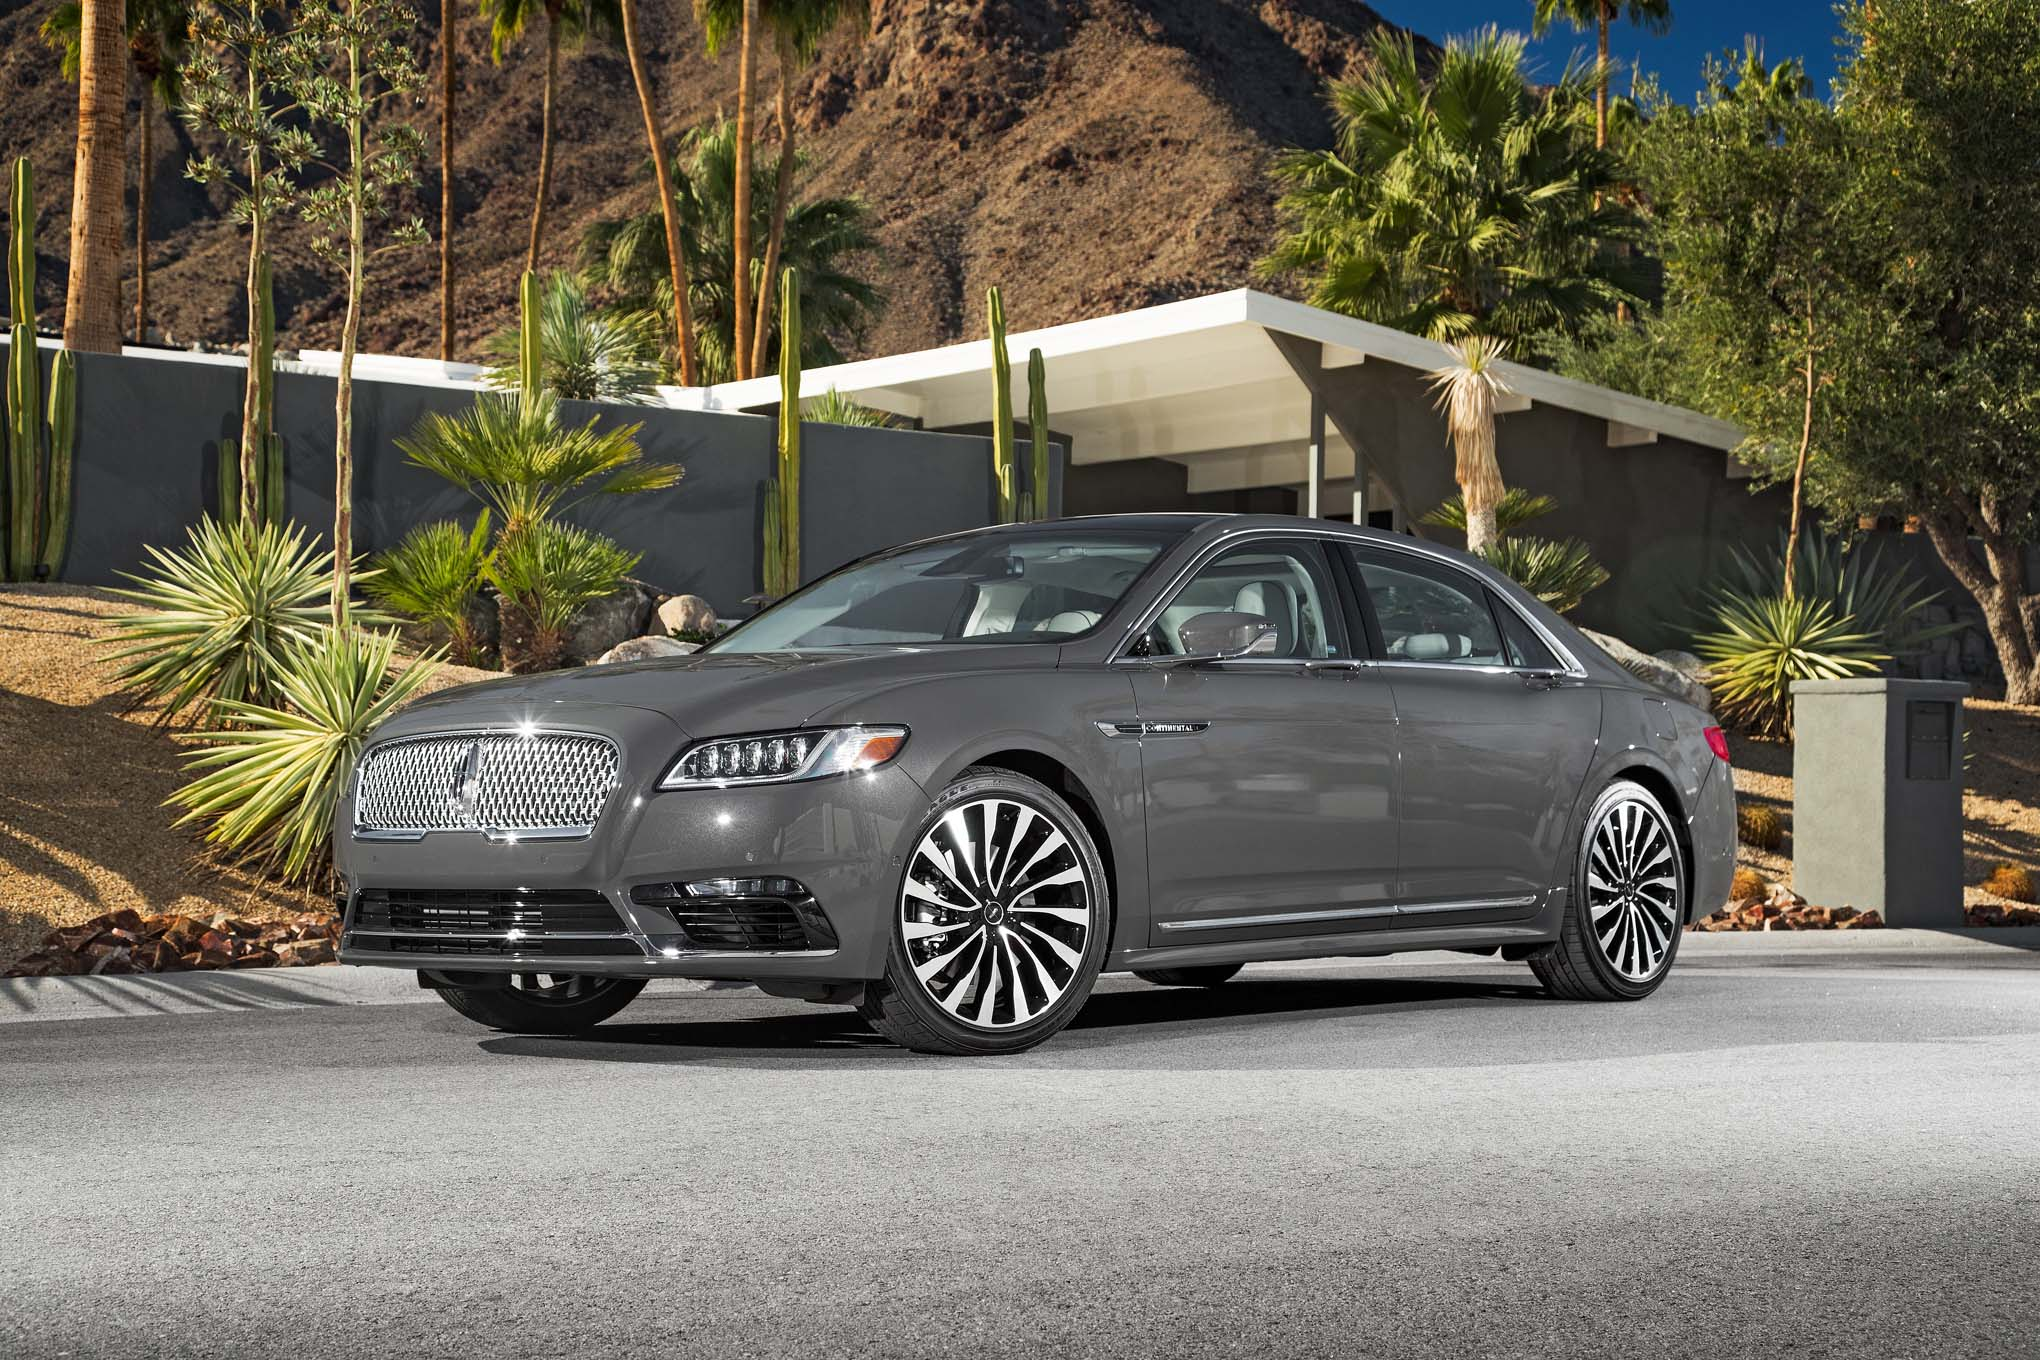 2017 Lincoln Continental Exterior Front And Side (Photo 4 of 41)